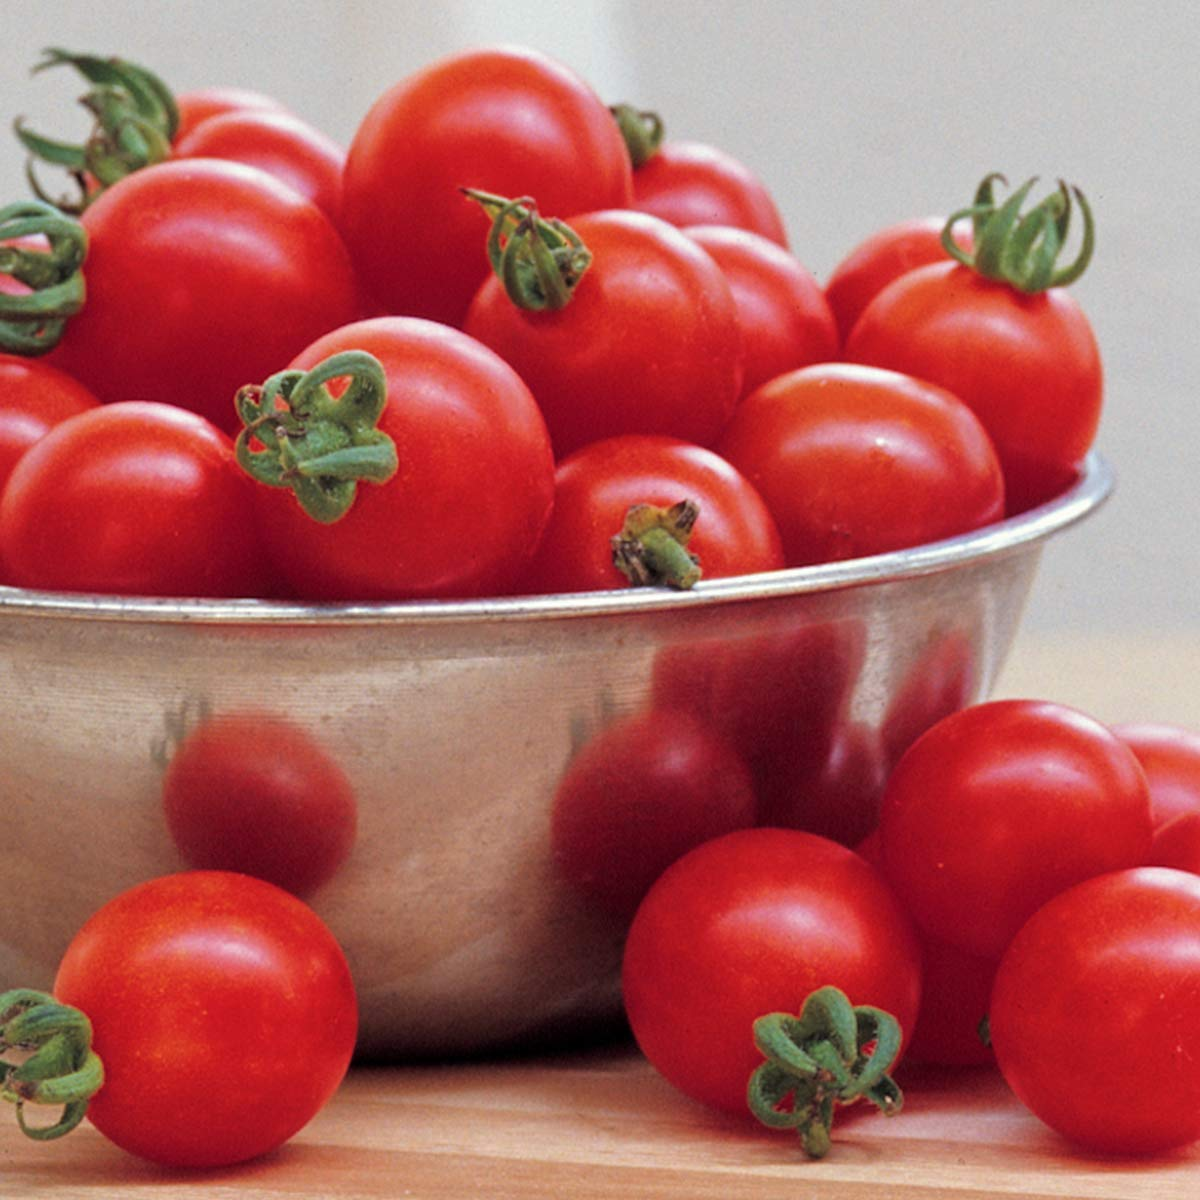 Burpee Super Sweet 100' Hybrid Cherry Tomato, 3 Live Plants, 2 1/2'' Pot by Burpee (Image #4)